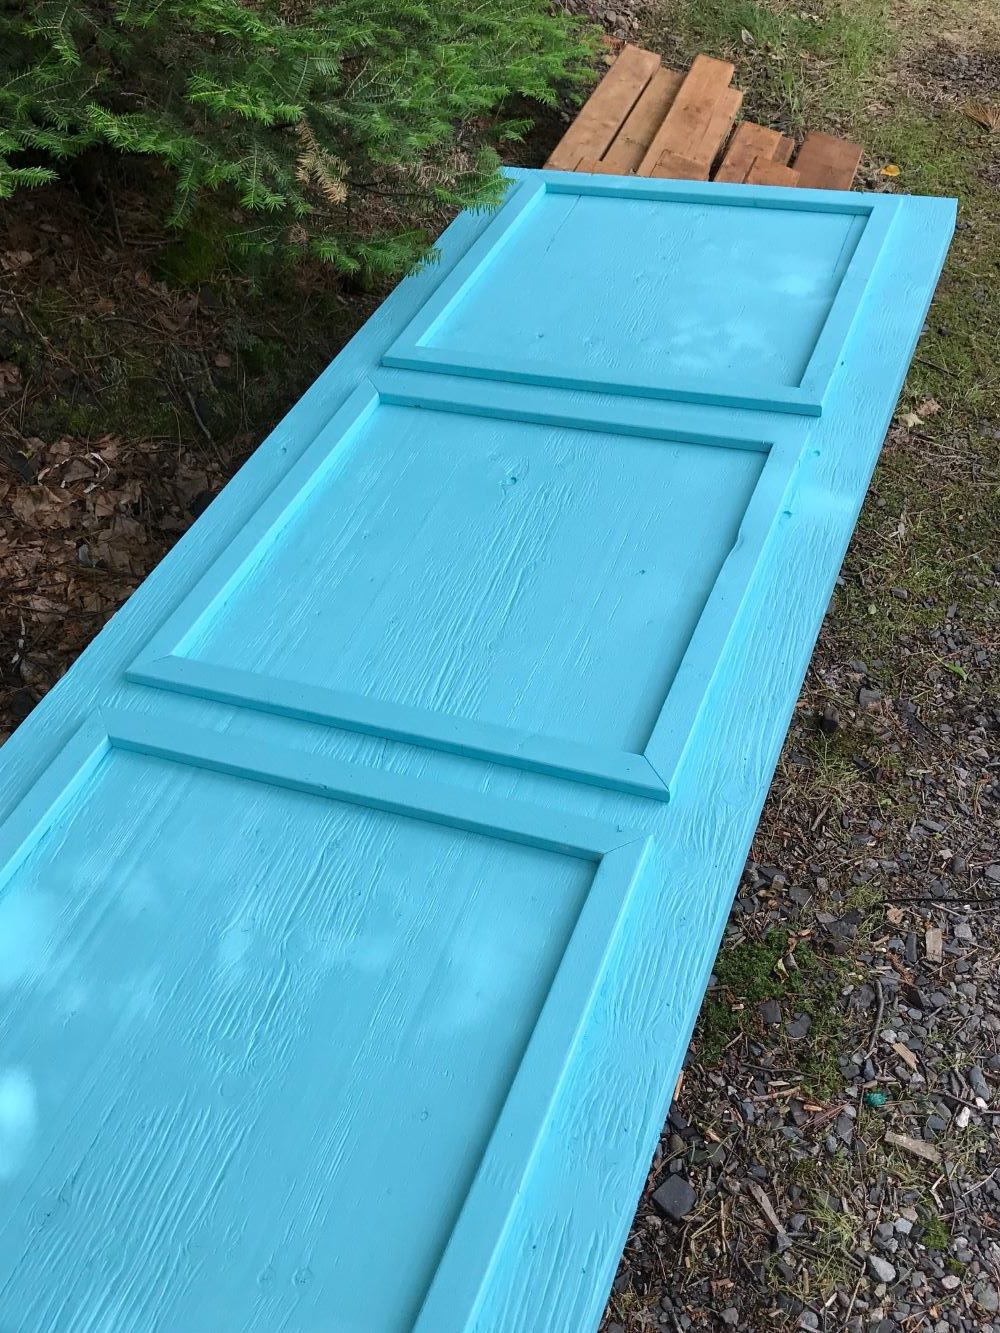 DIY Man Door for Chicken Coop